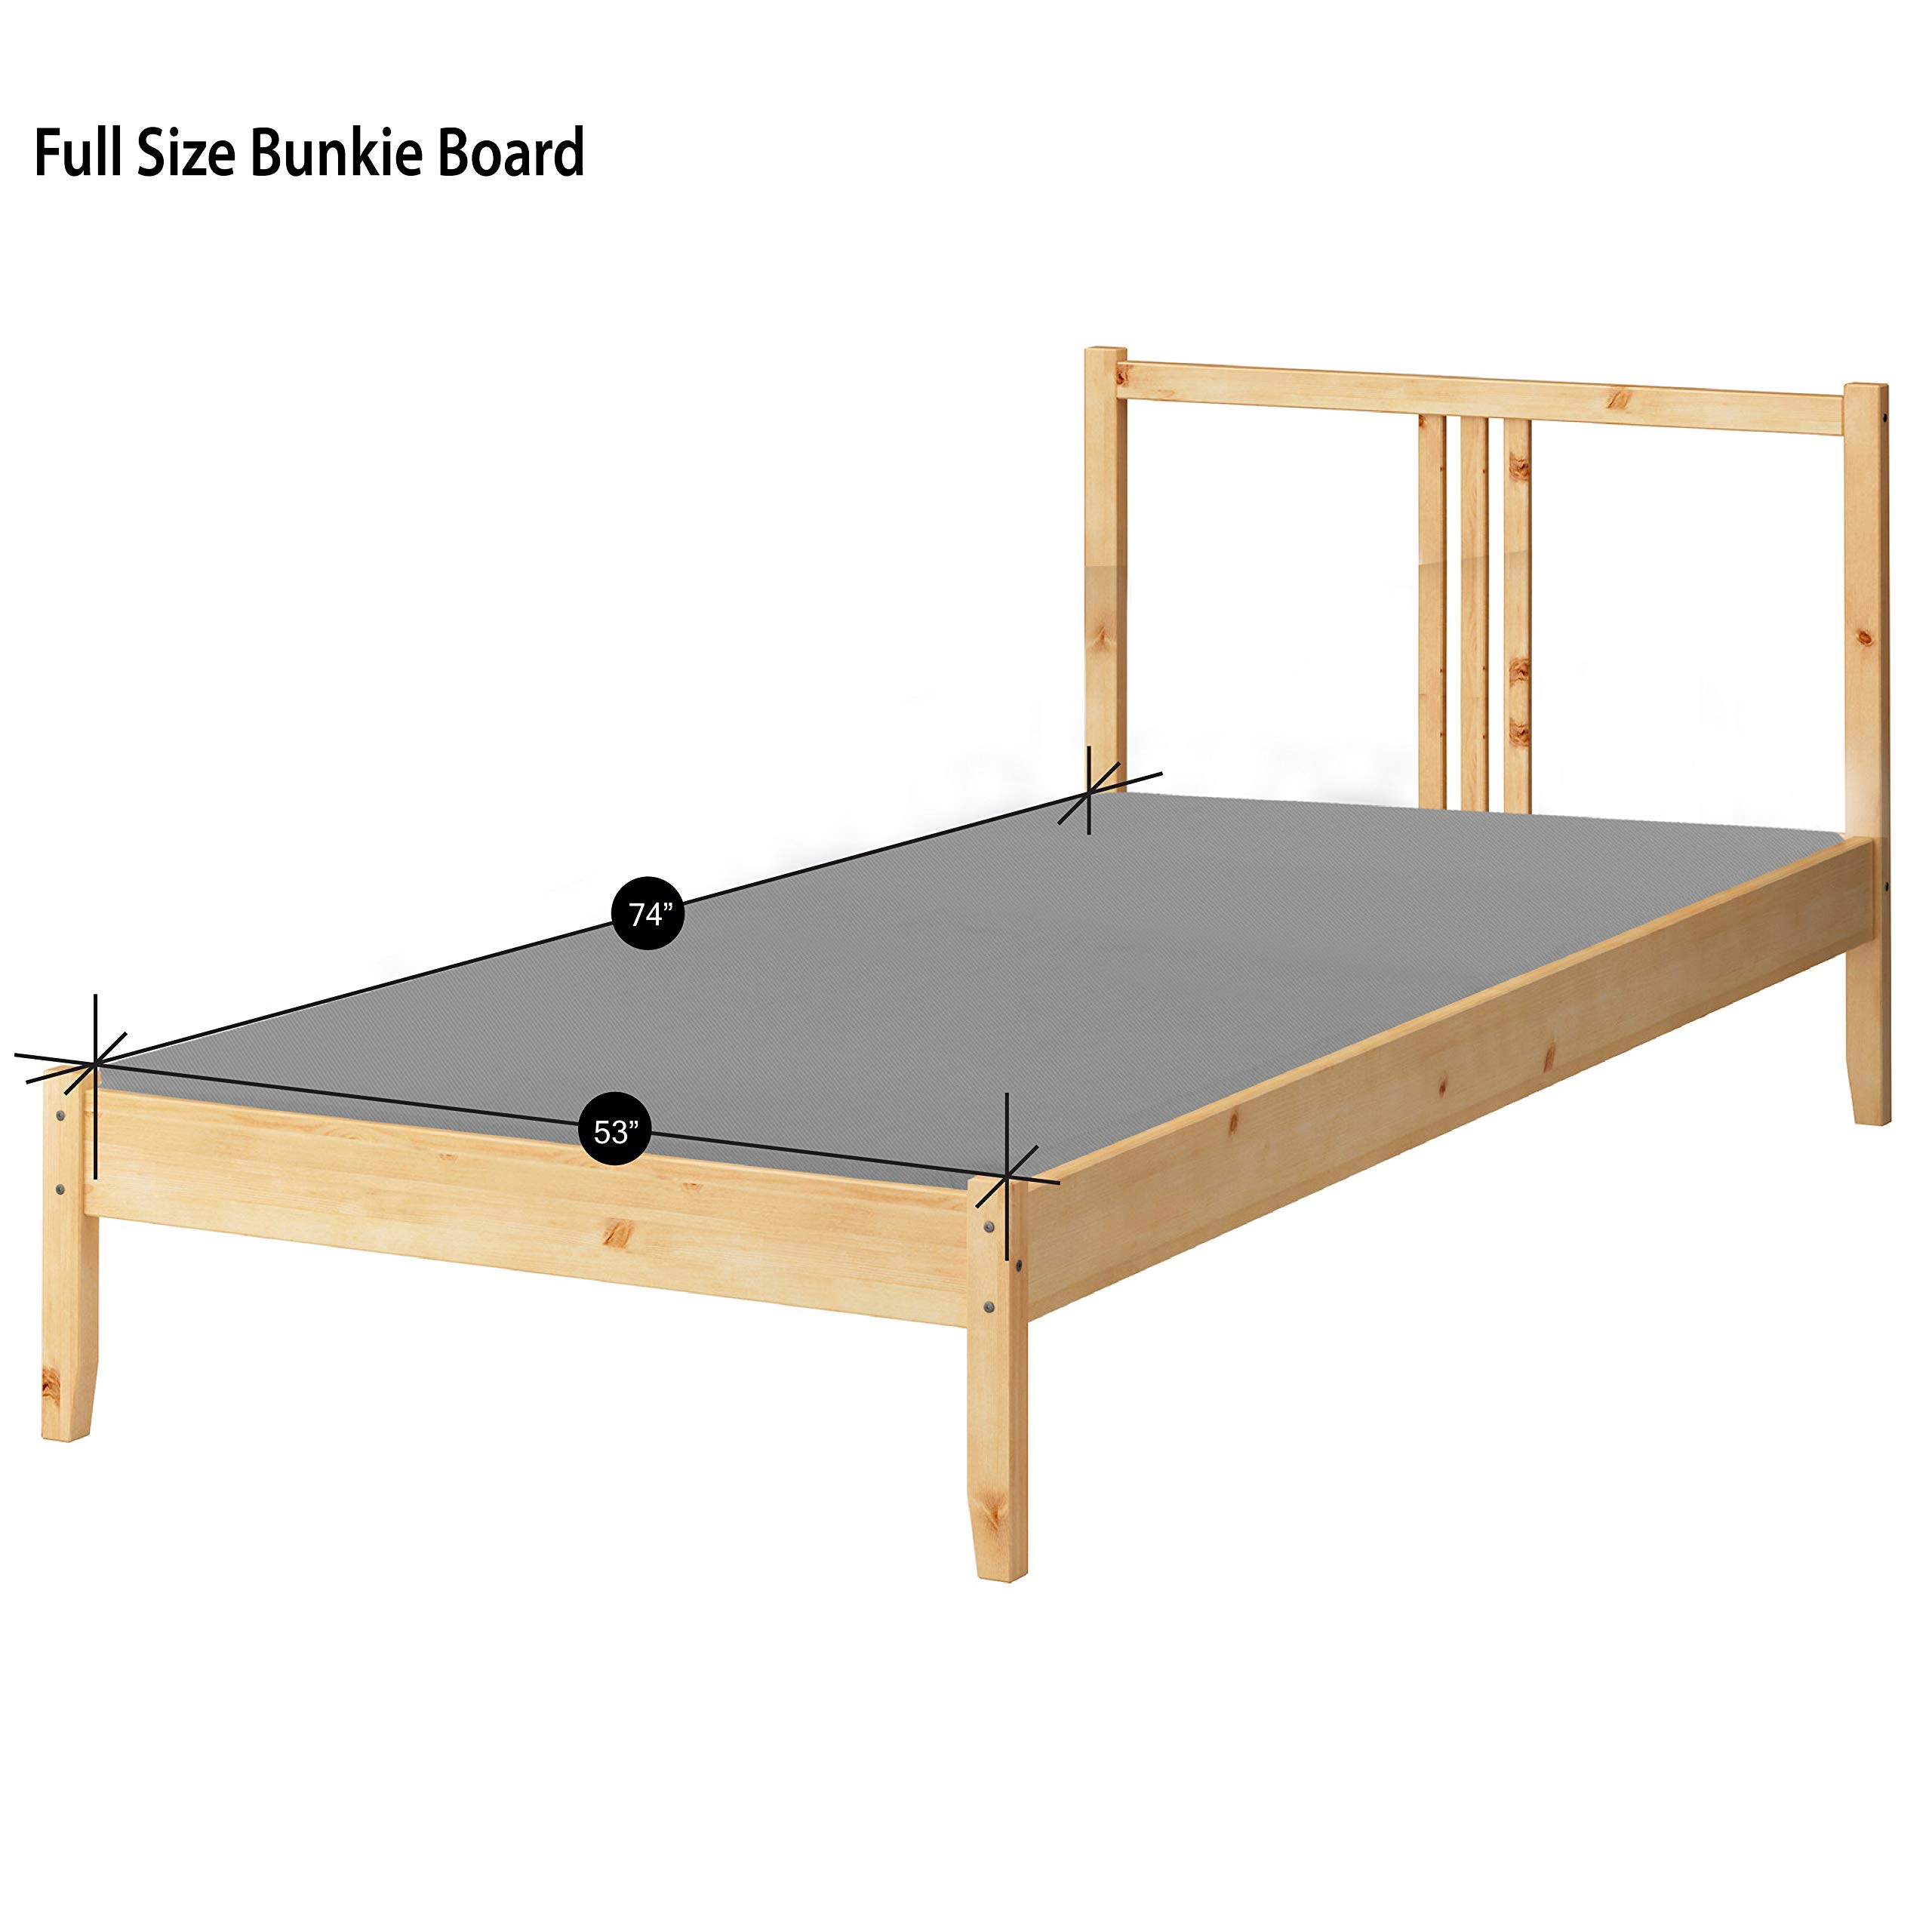 Greaton, 2-Inch Bunkie Board Mattress/Bed Support, Fits Standard, Full Size, Grey